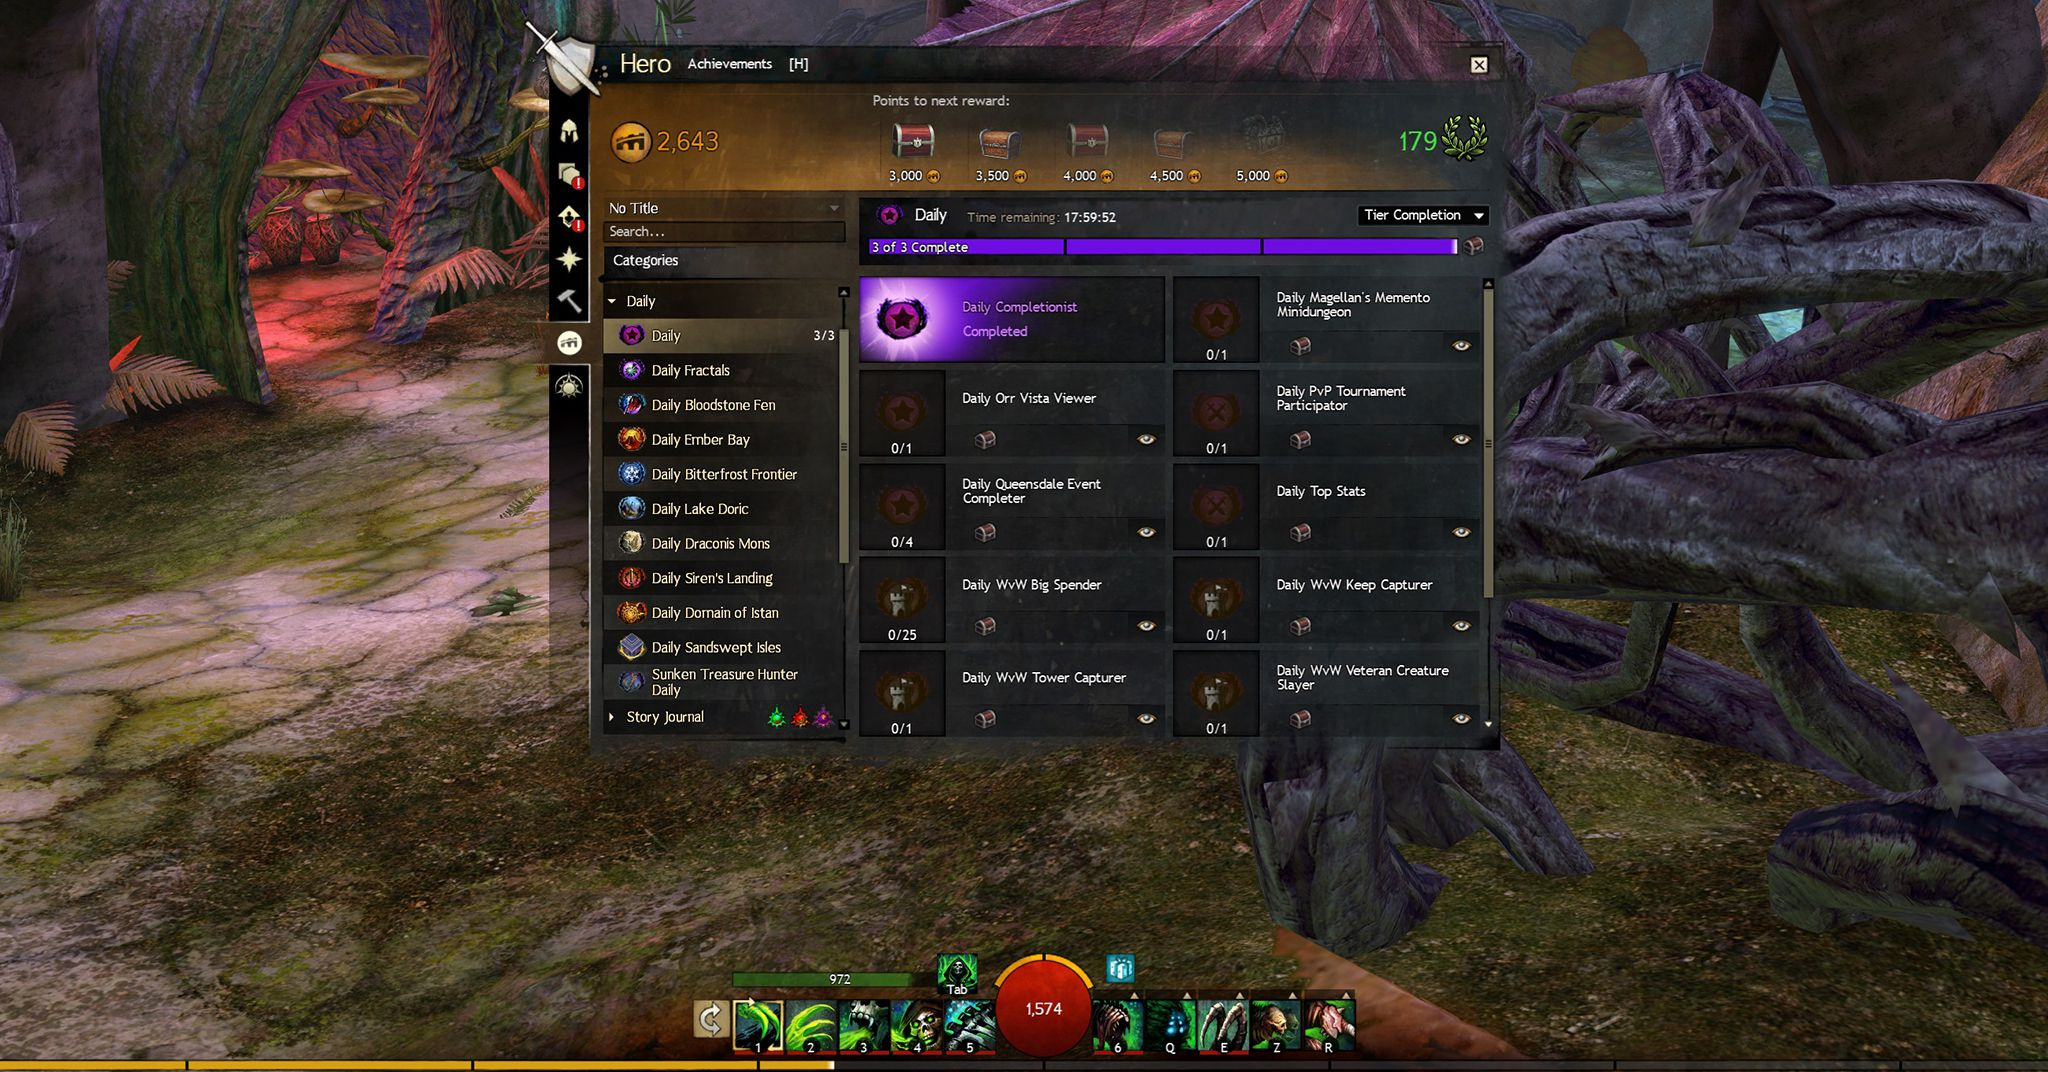 Guild Wars 2 - Server Reset Time for Dailies & Login Rewards